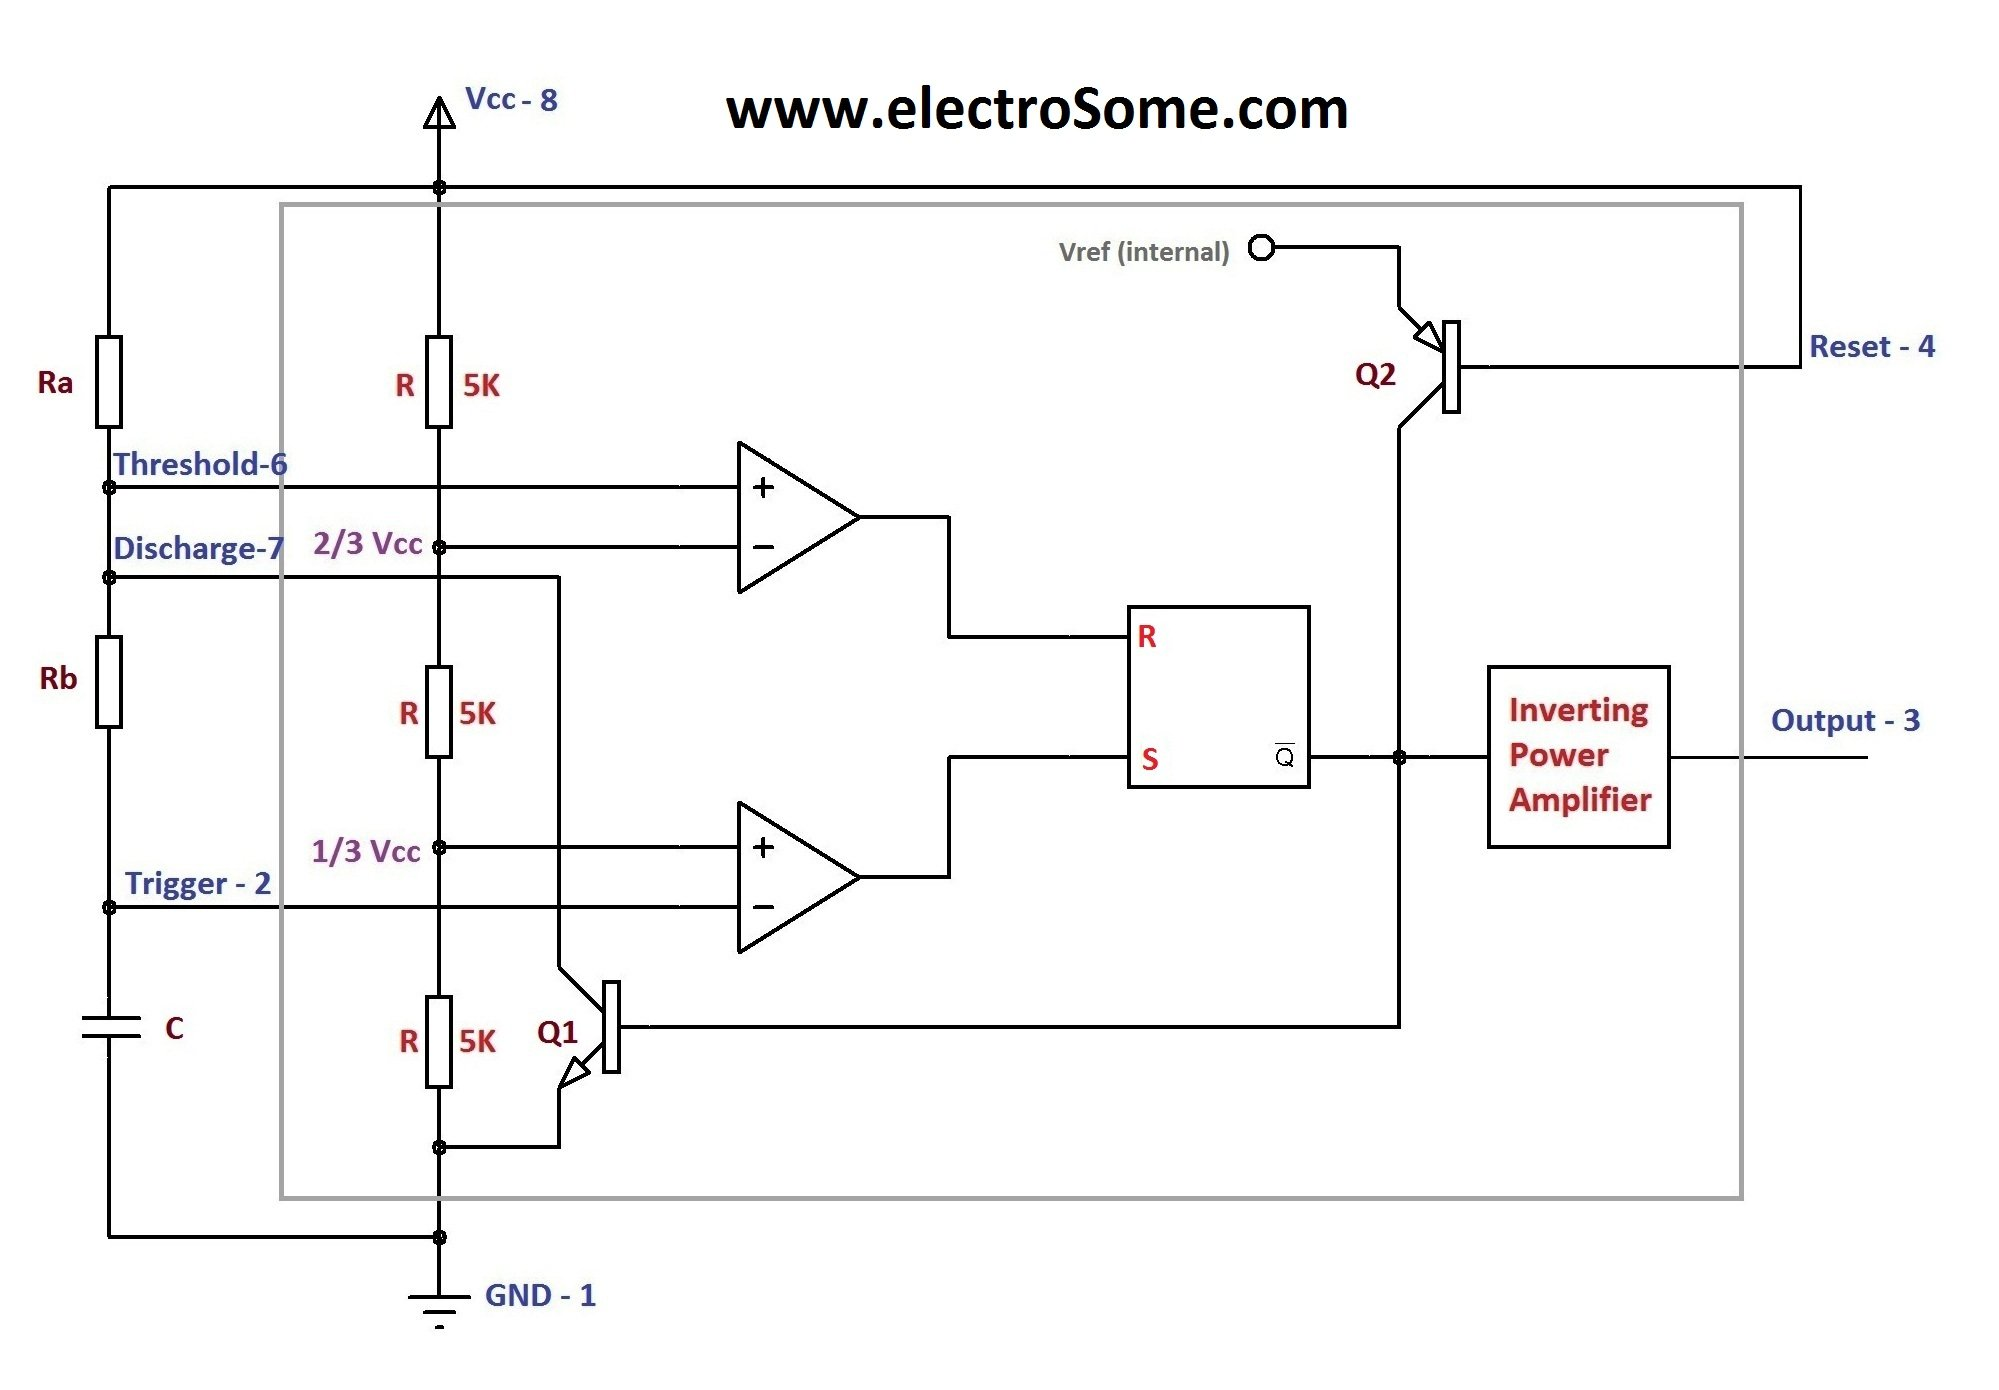 astable multivibrator using 555 timer rh electrosome com ic 555 block diagram and applications ic 555 pin diagram description